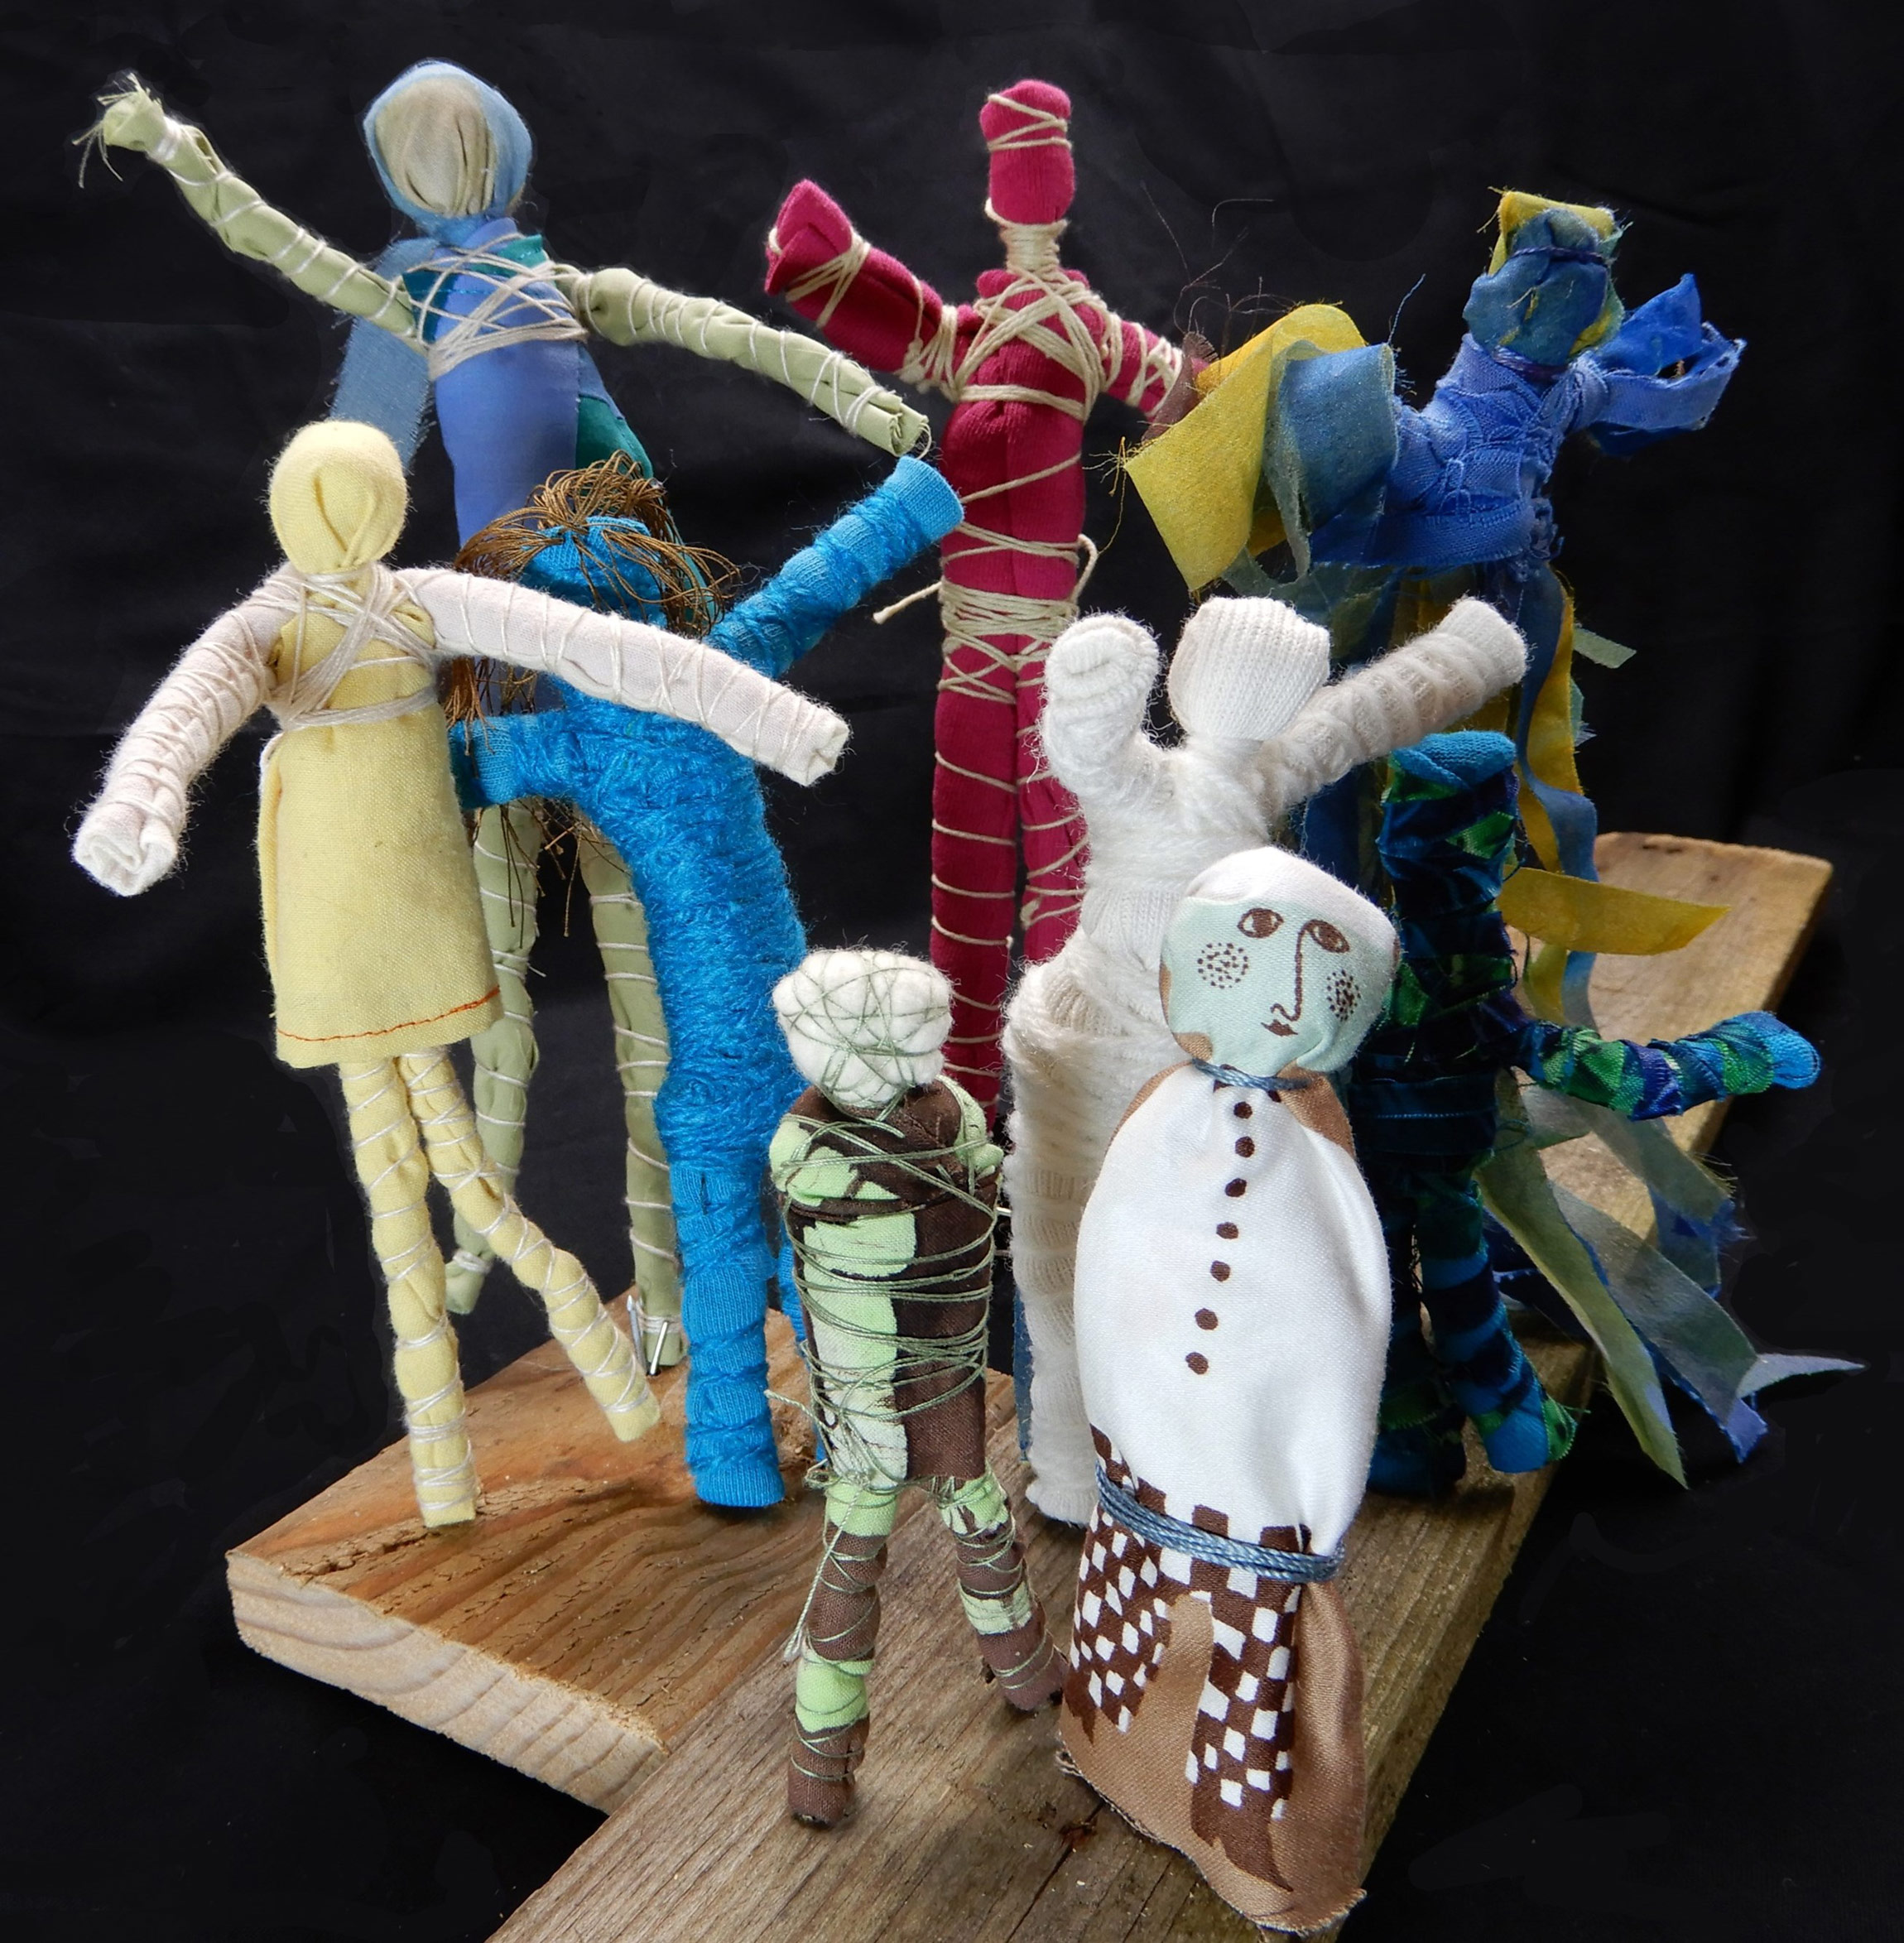 """Daily People"" by Kathleen Loomis, Fabric, Individual figures 3 to 10in tall, 2017, $20 each on wood base"